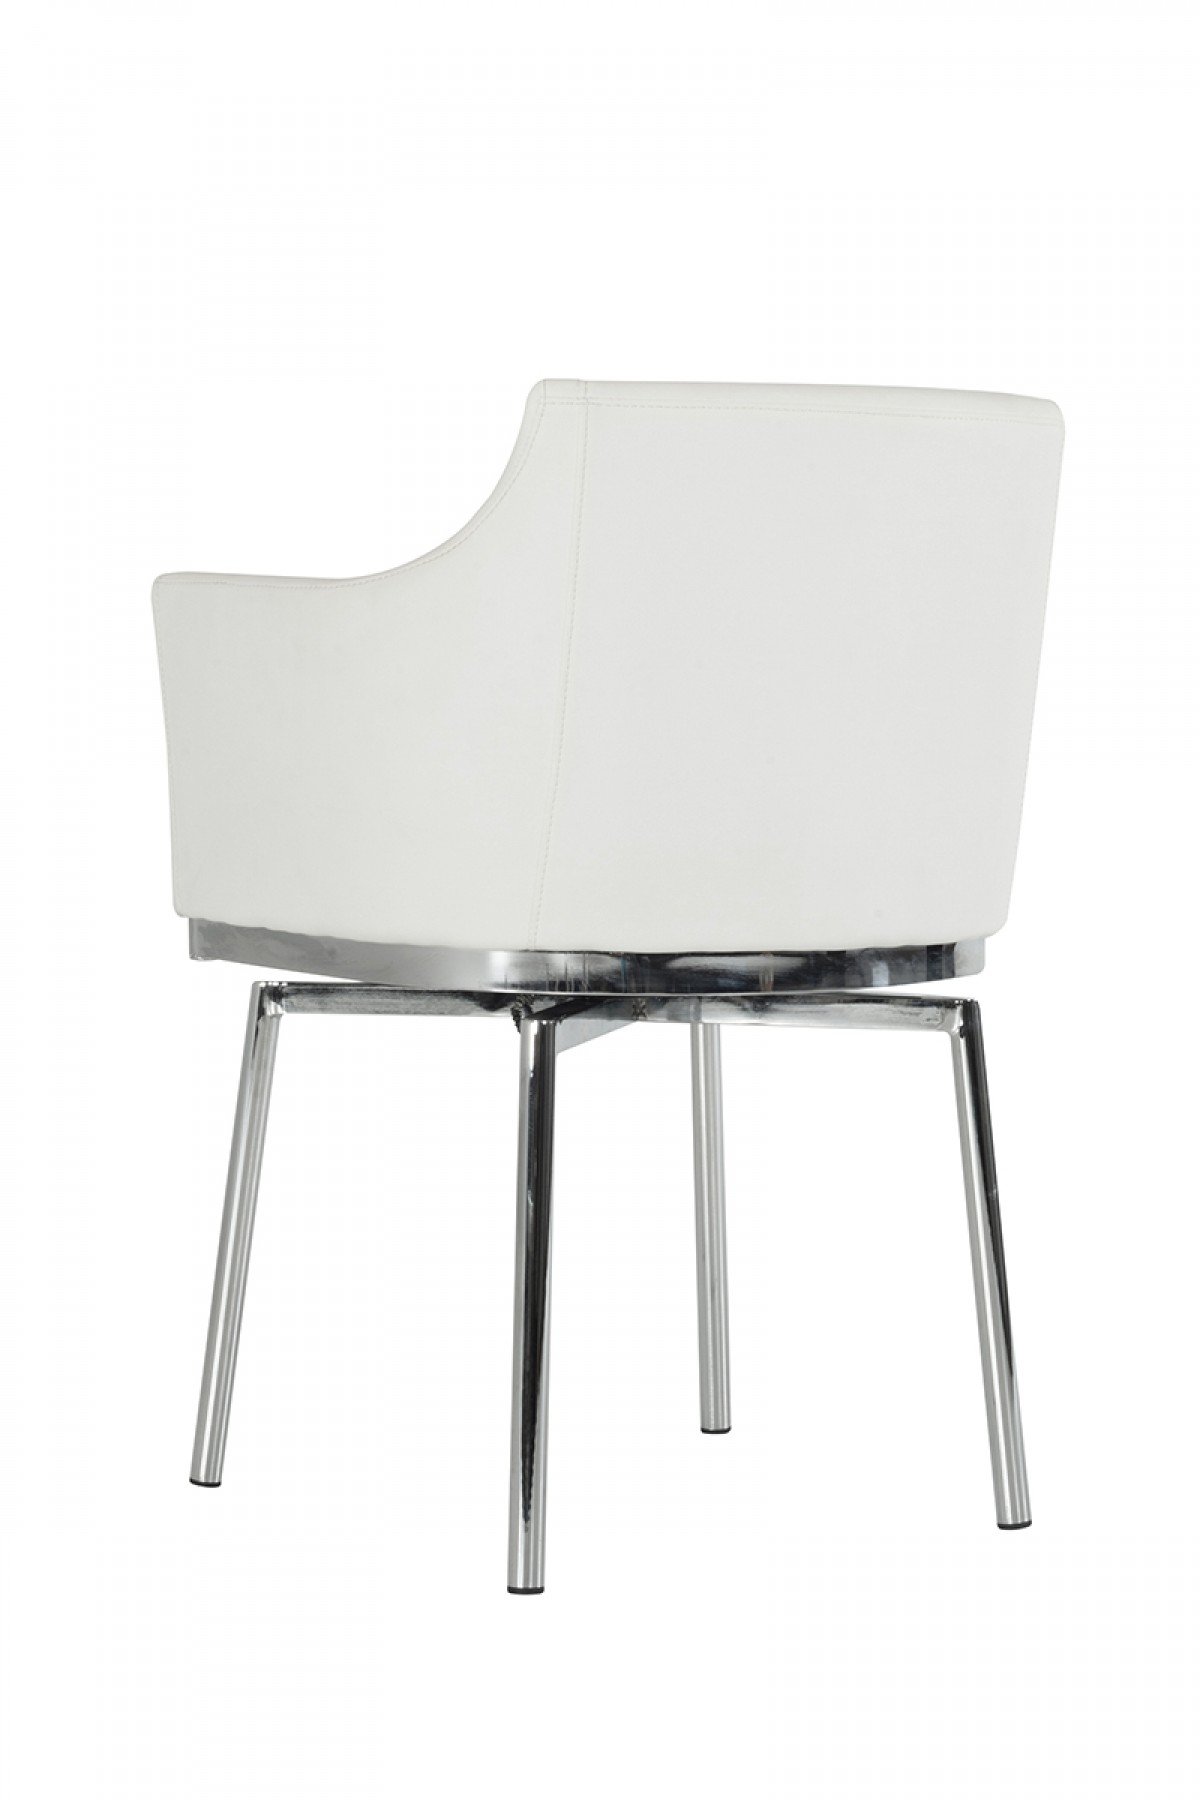 new low priced swivel dining chair